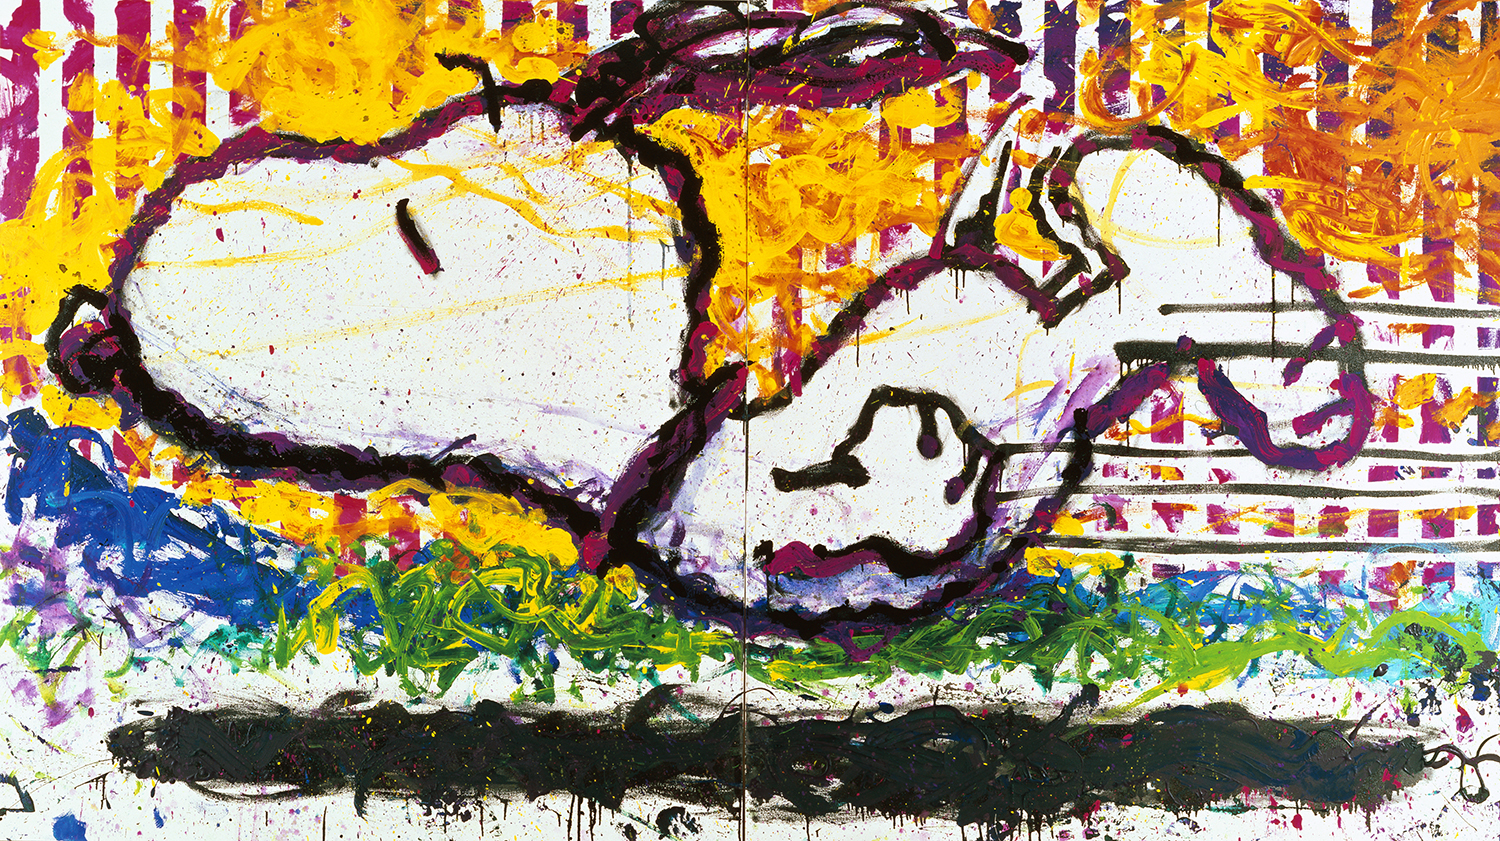 As The Sun Sets Slowly In The West We Bid You A Fine Farewell   oil enamel and acrylic on canvas   72″ x 128″   1997